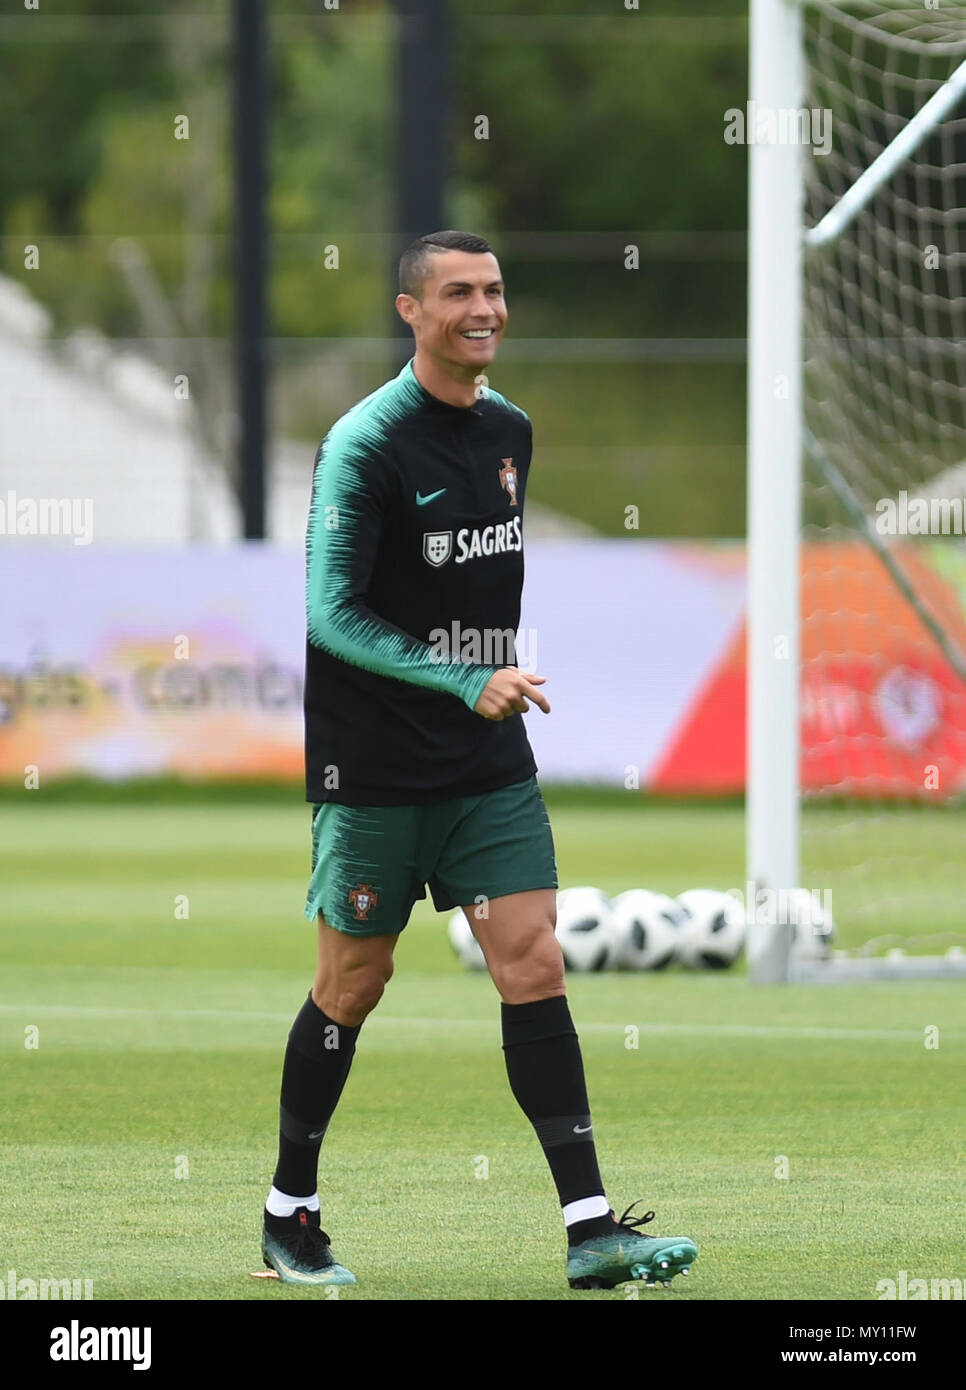 Oeiras Portugal 5th June 2018 Portugals Cristiano Ronaldo Reacts During A Training